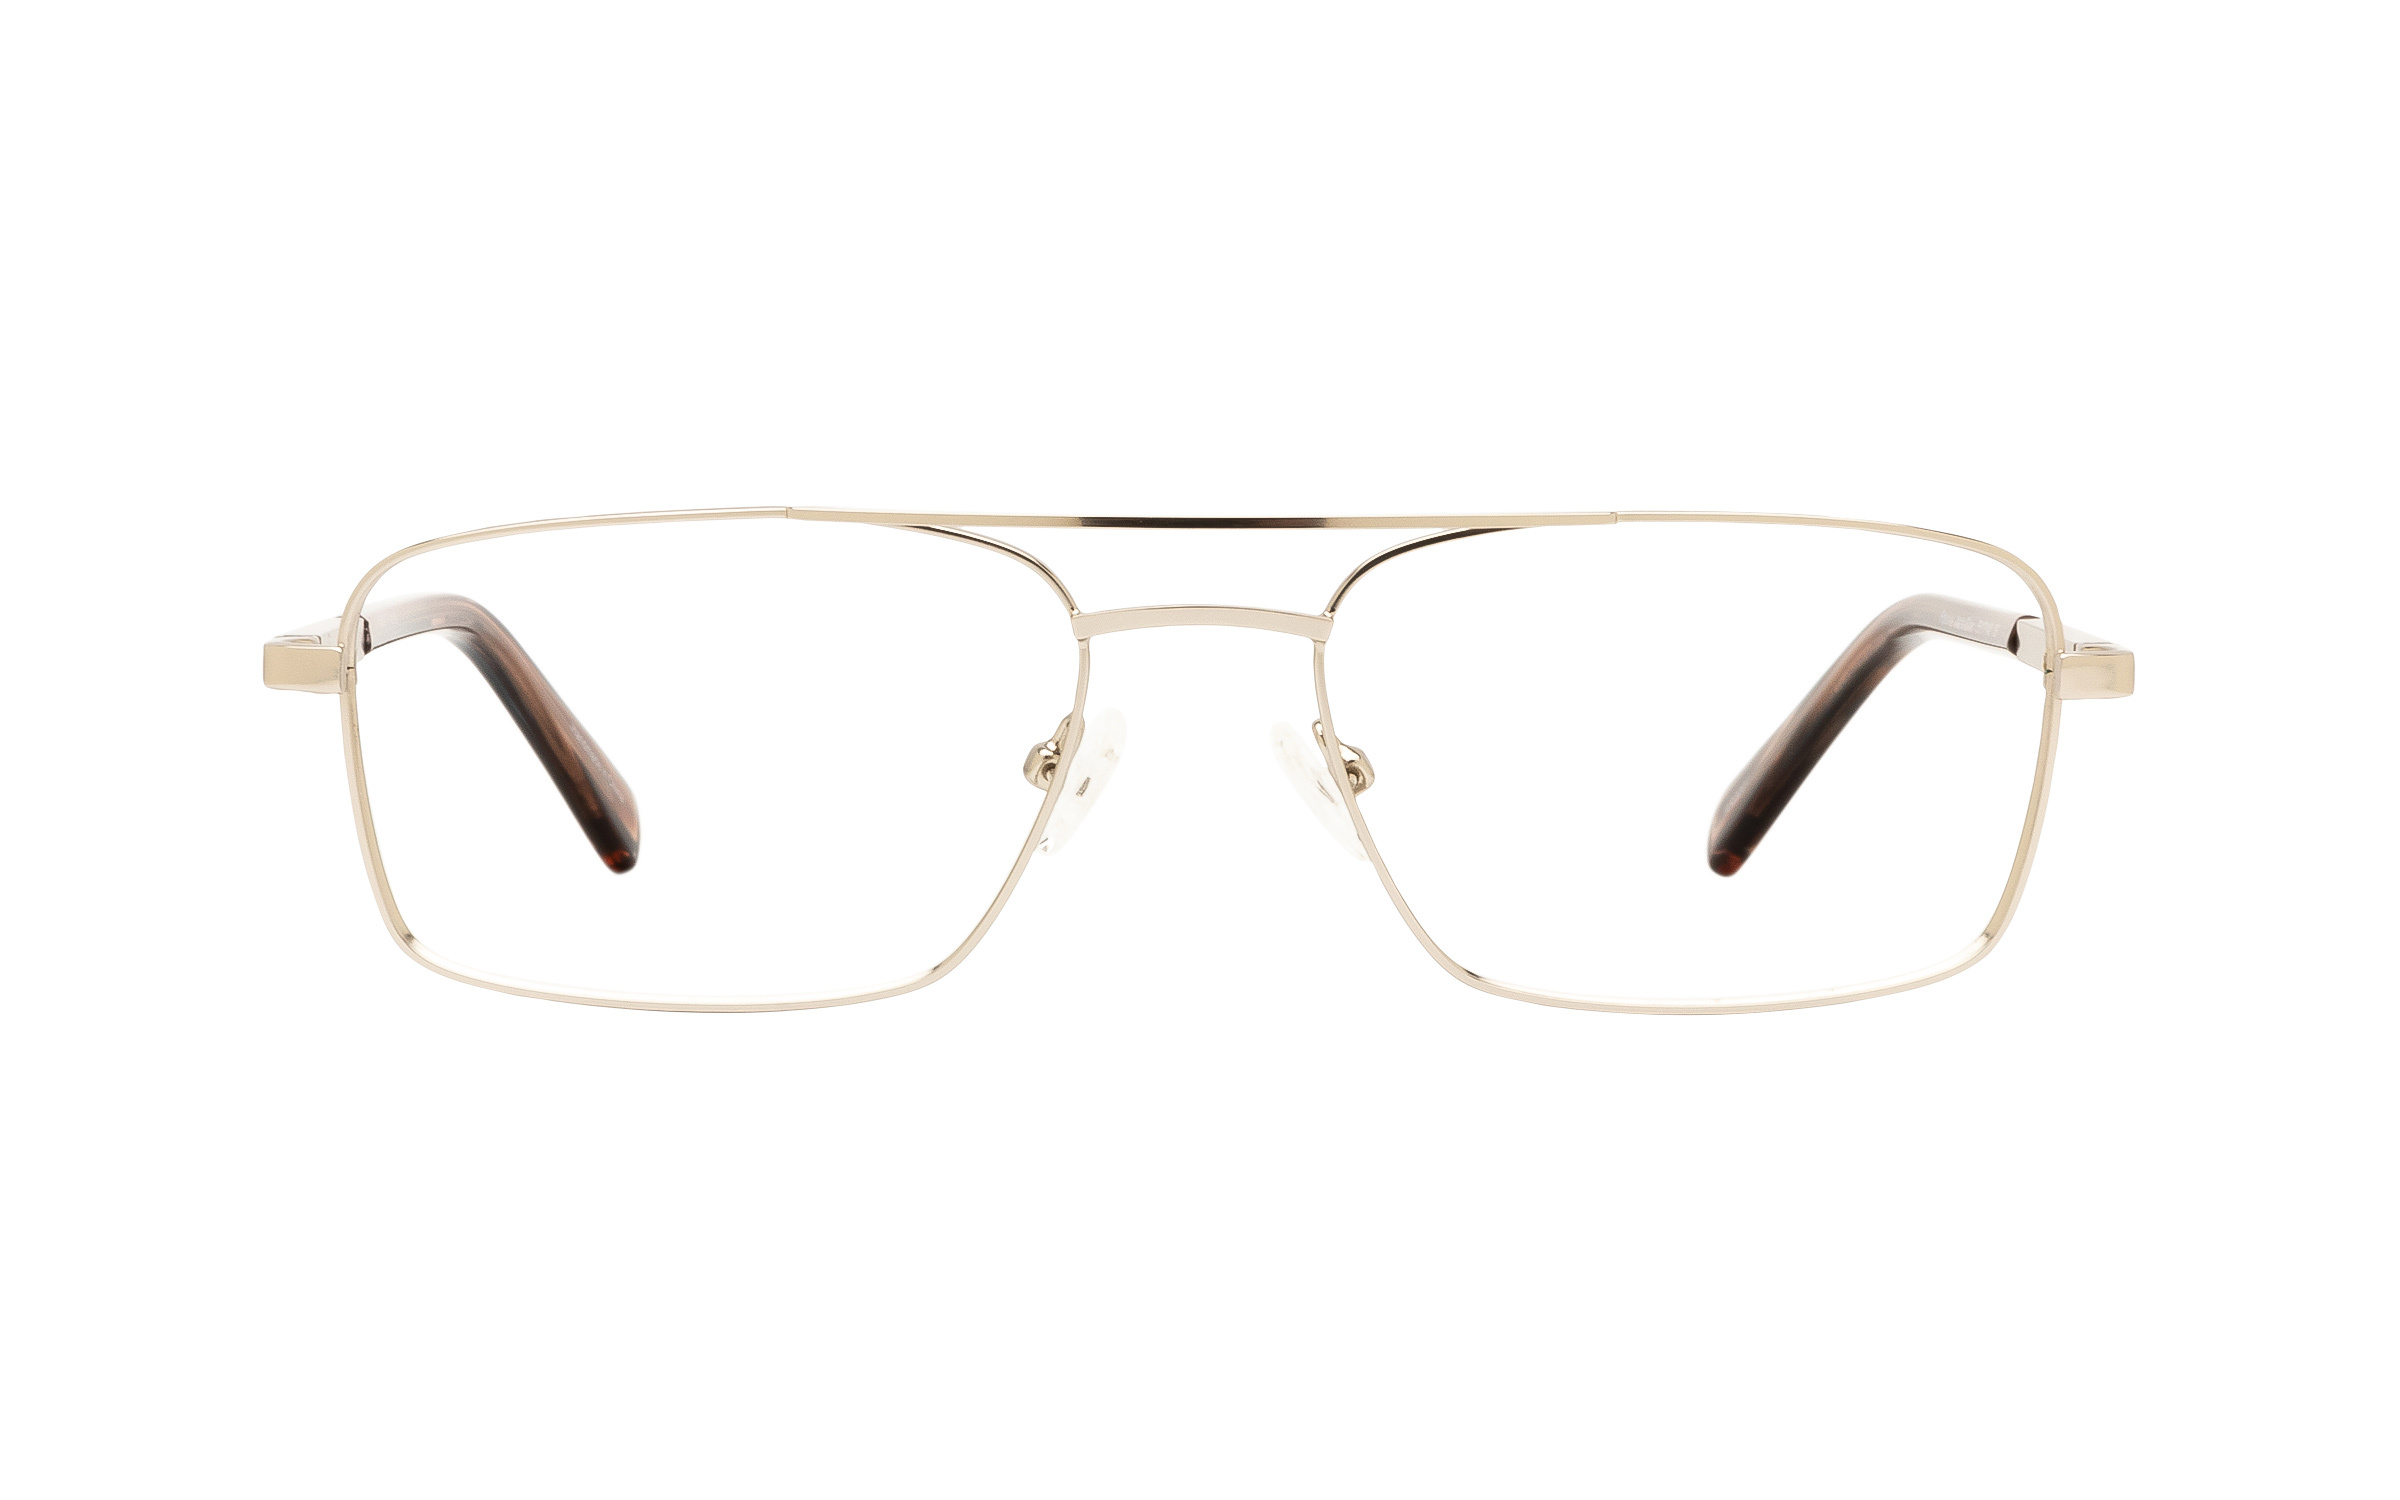 http://www.coastal.com/ - Clearly Basics Postville CLS062 C03 (55) Eyeglasses and Frame in Matte Silver – Online Coastal